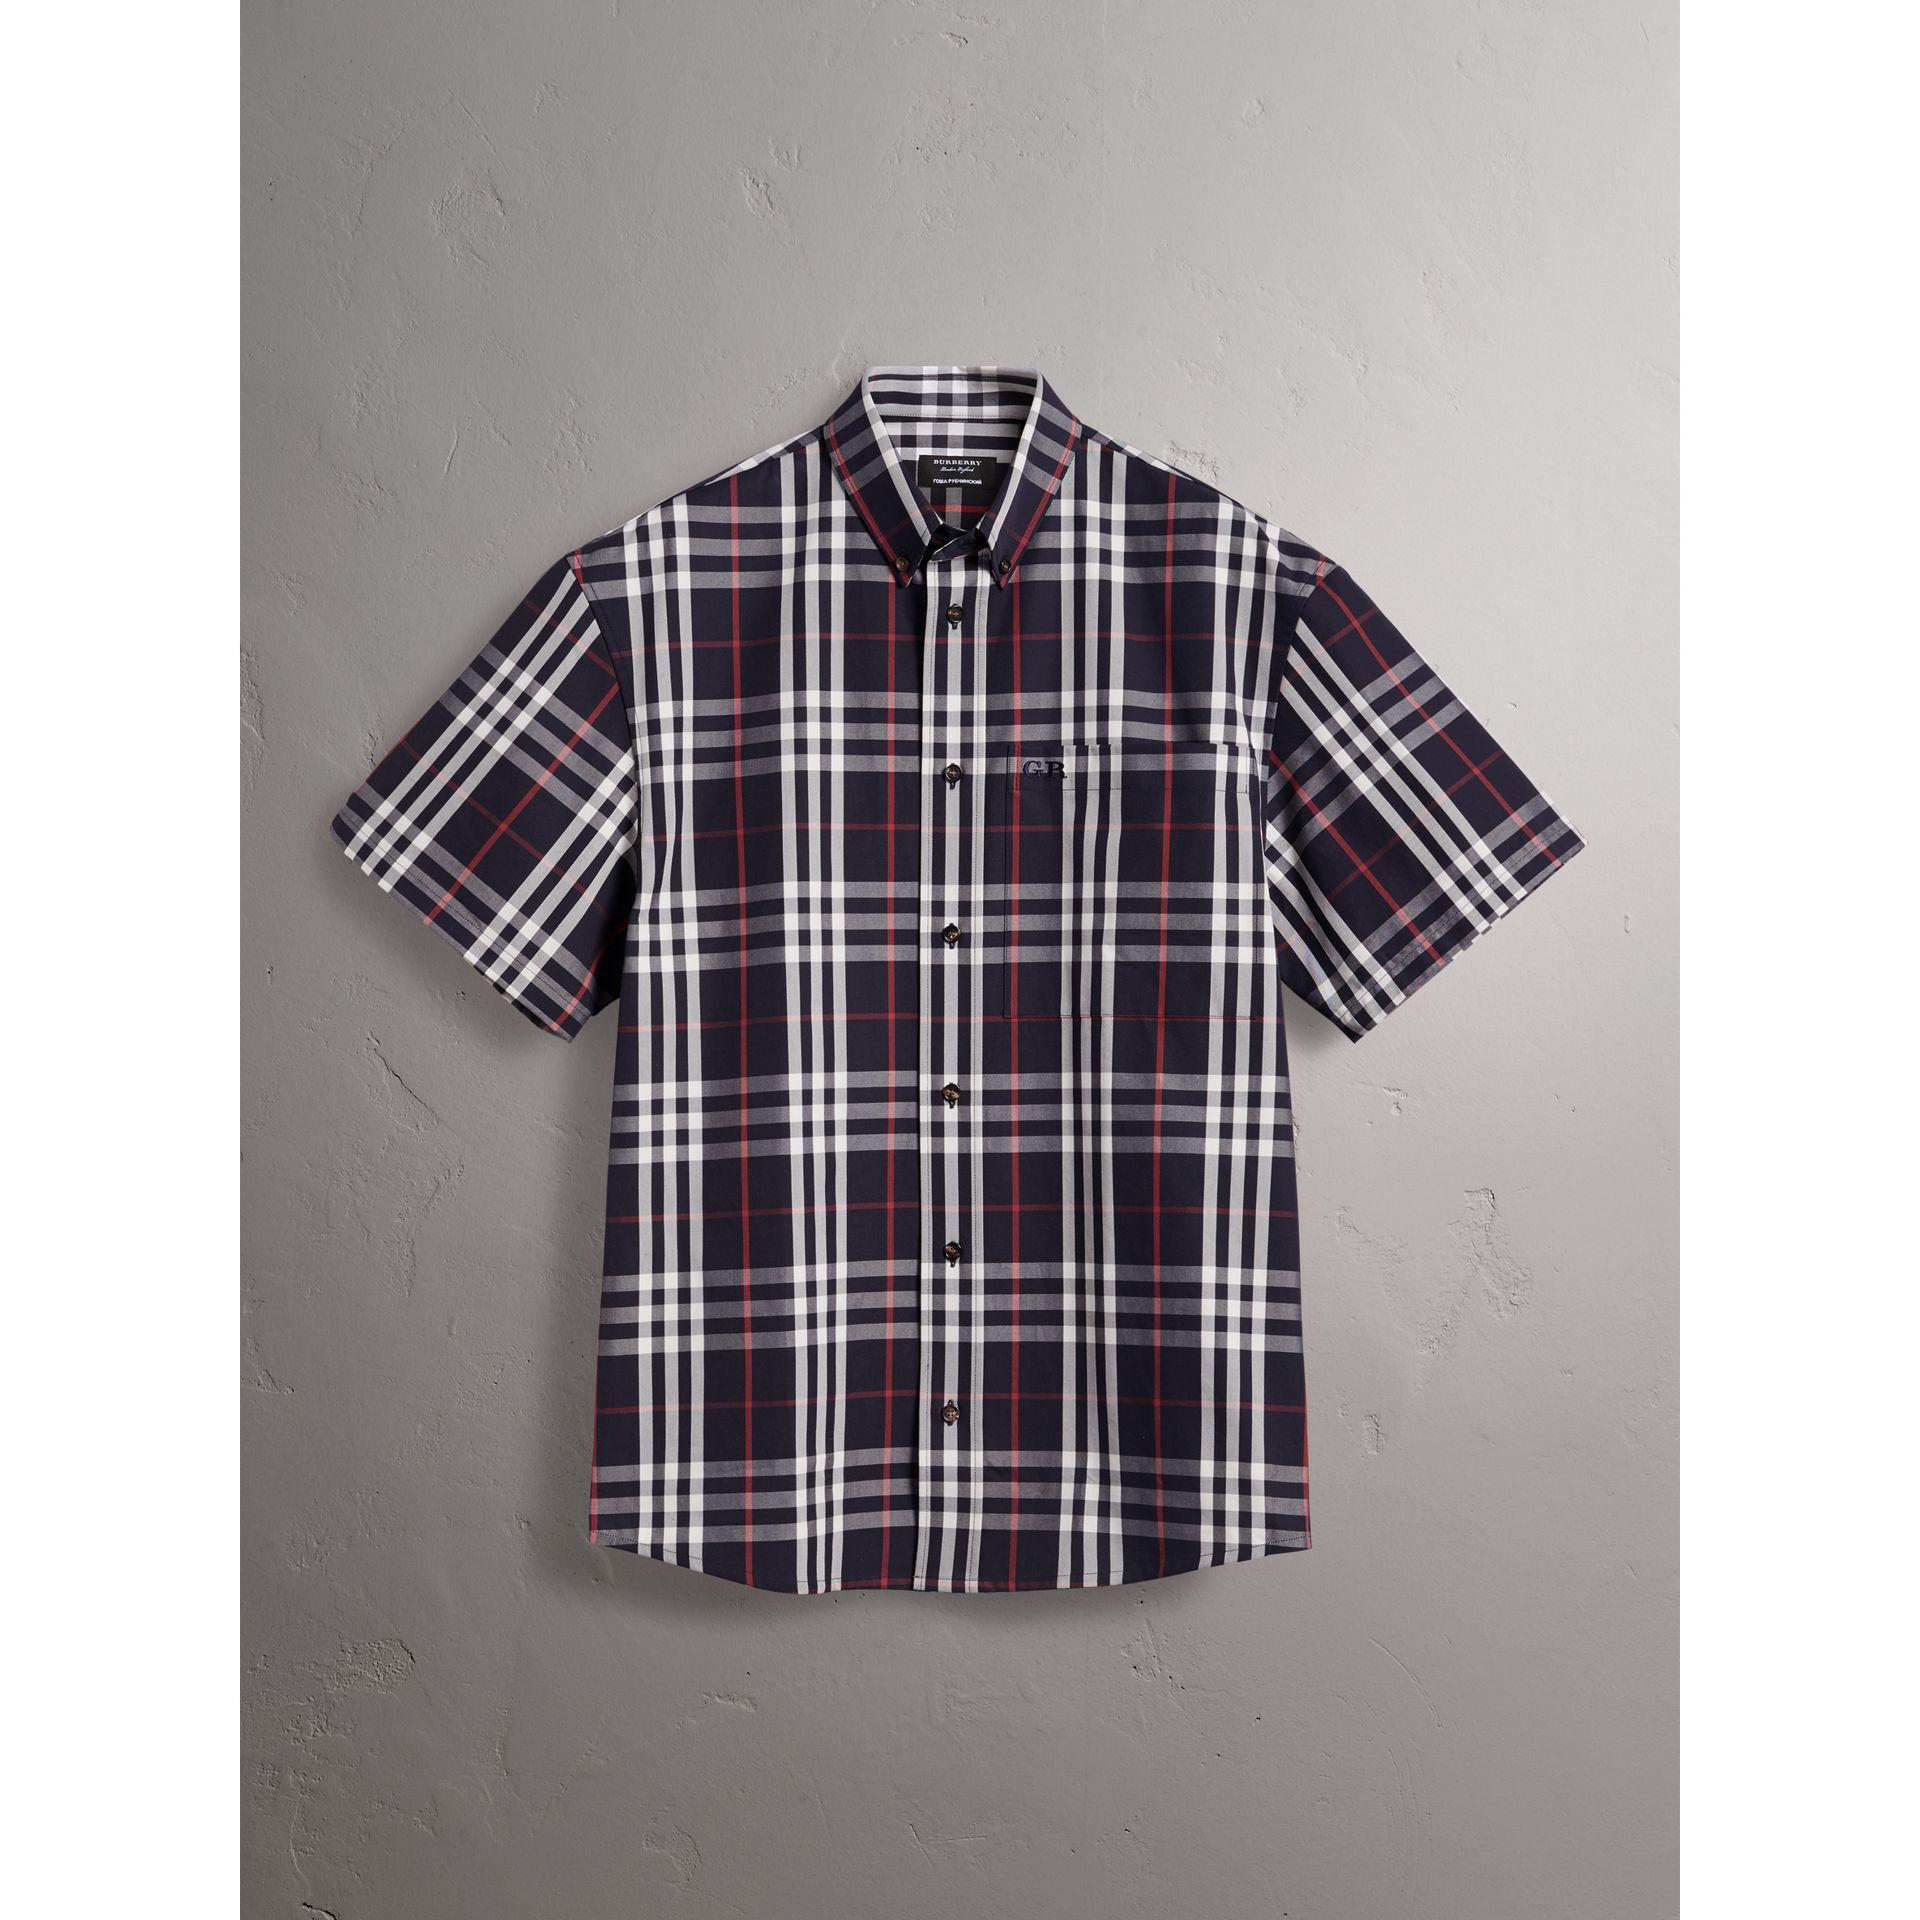 Gosha x Burberry Short-sleeve Check Shirt in Navy - Men | Burberry - gallery image 4